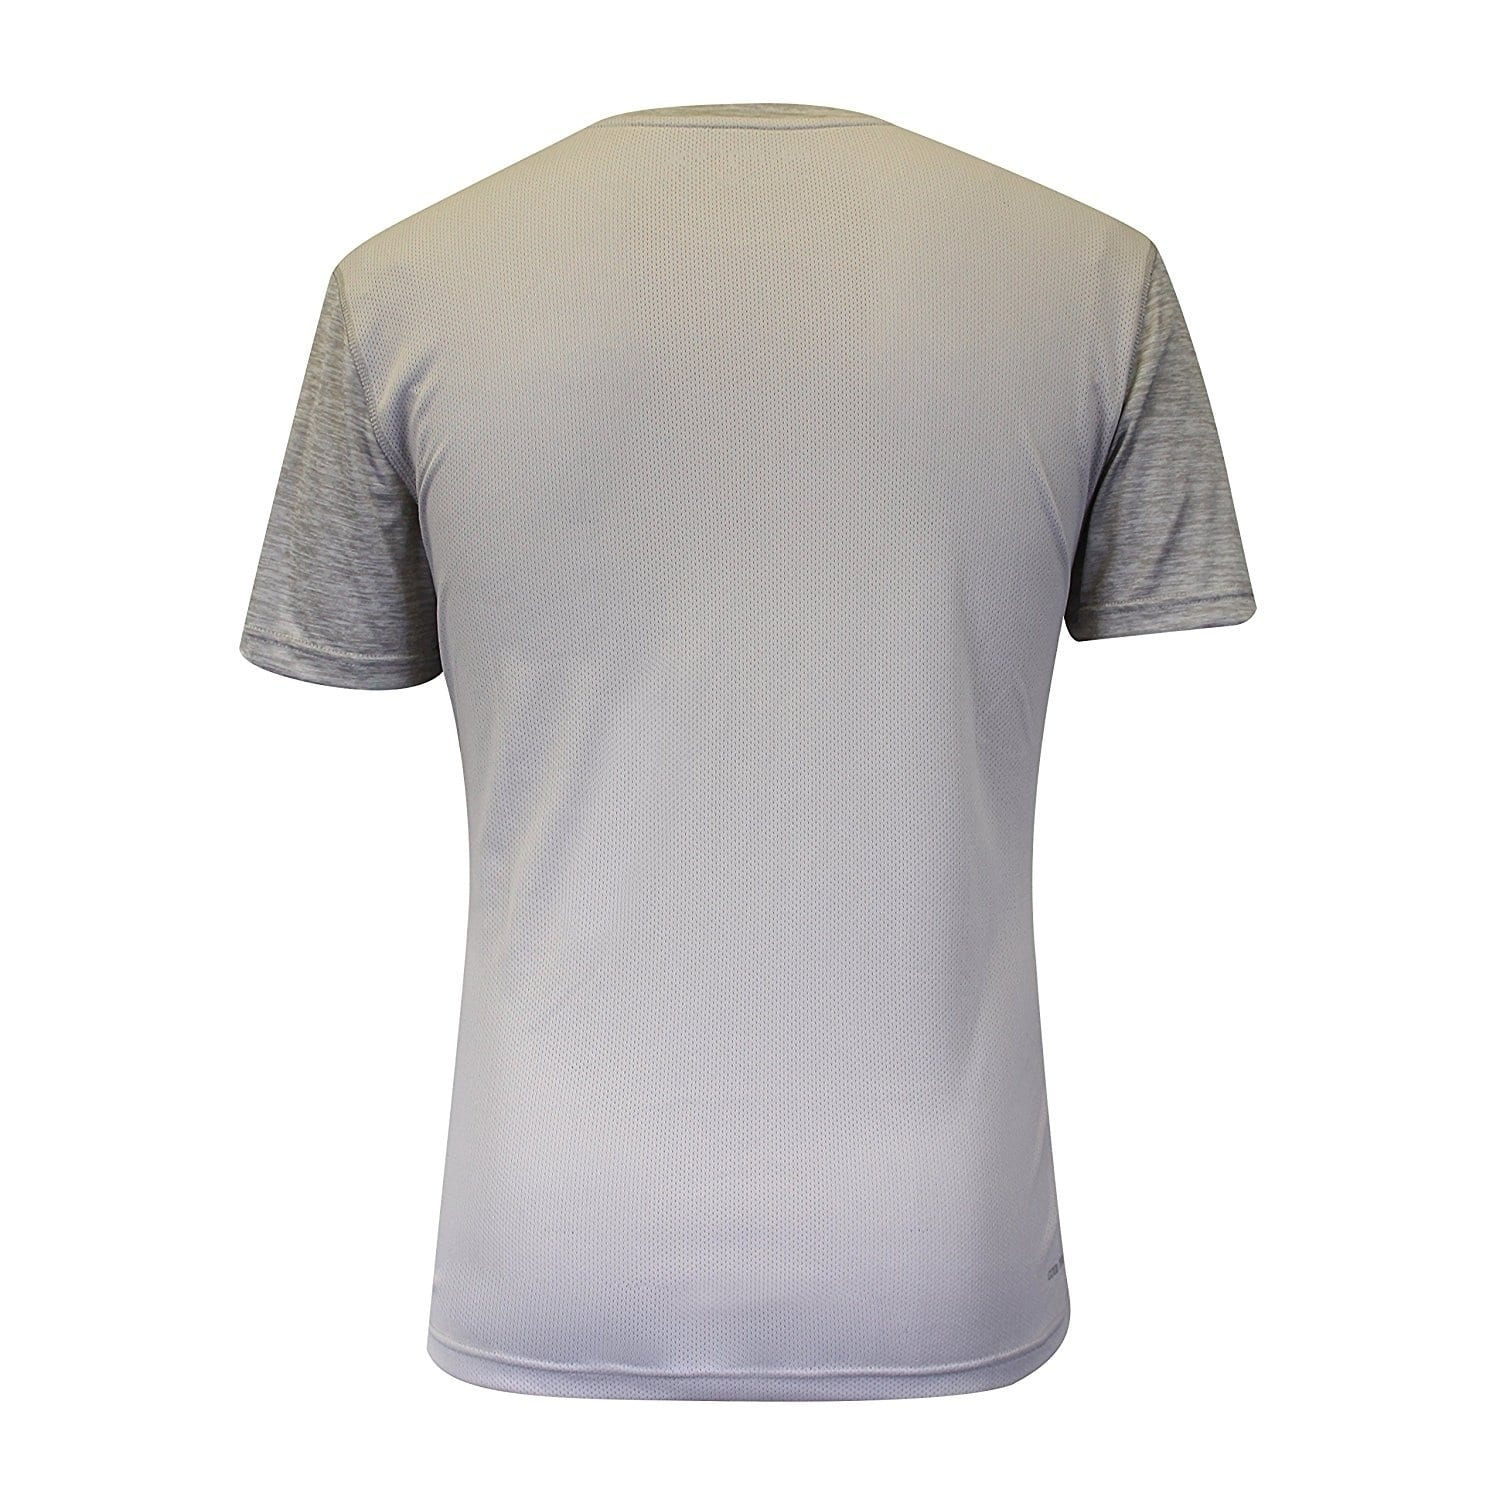 Men S T Shirts For Less Overstock Com